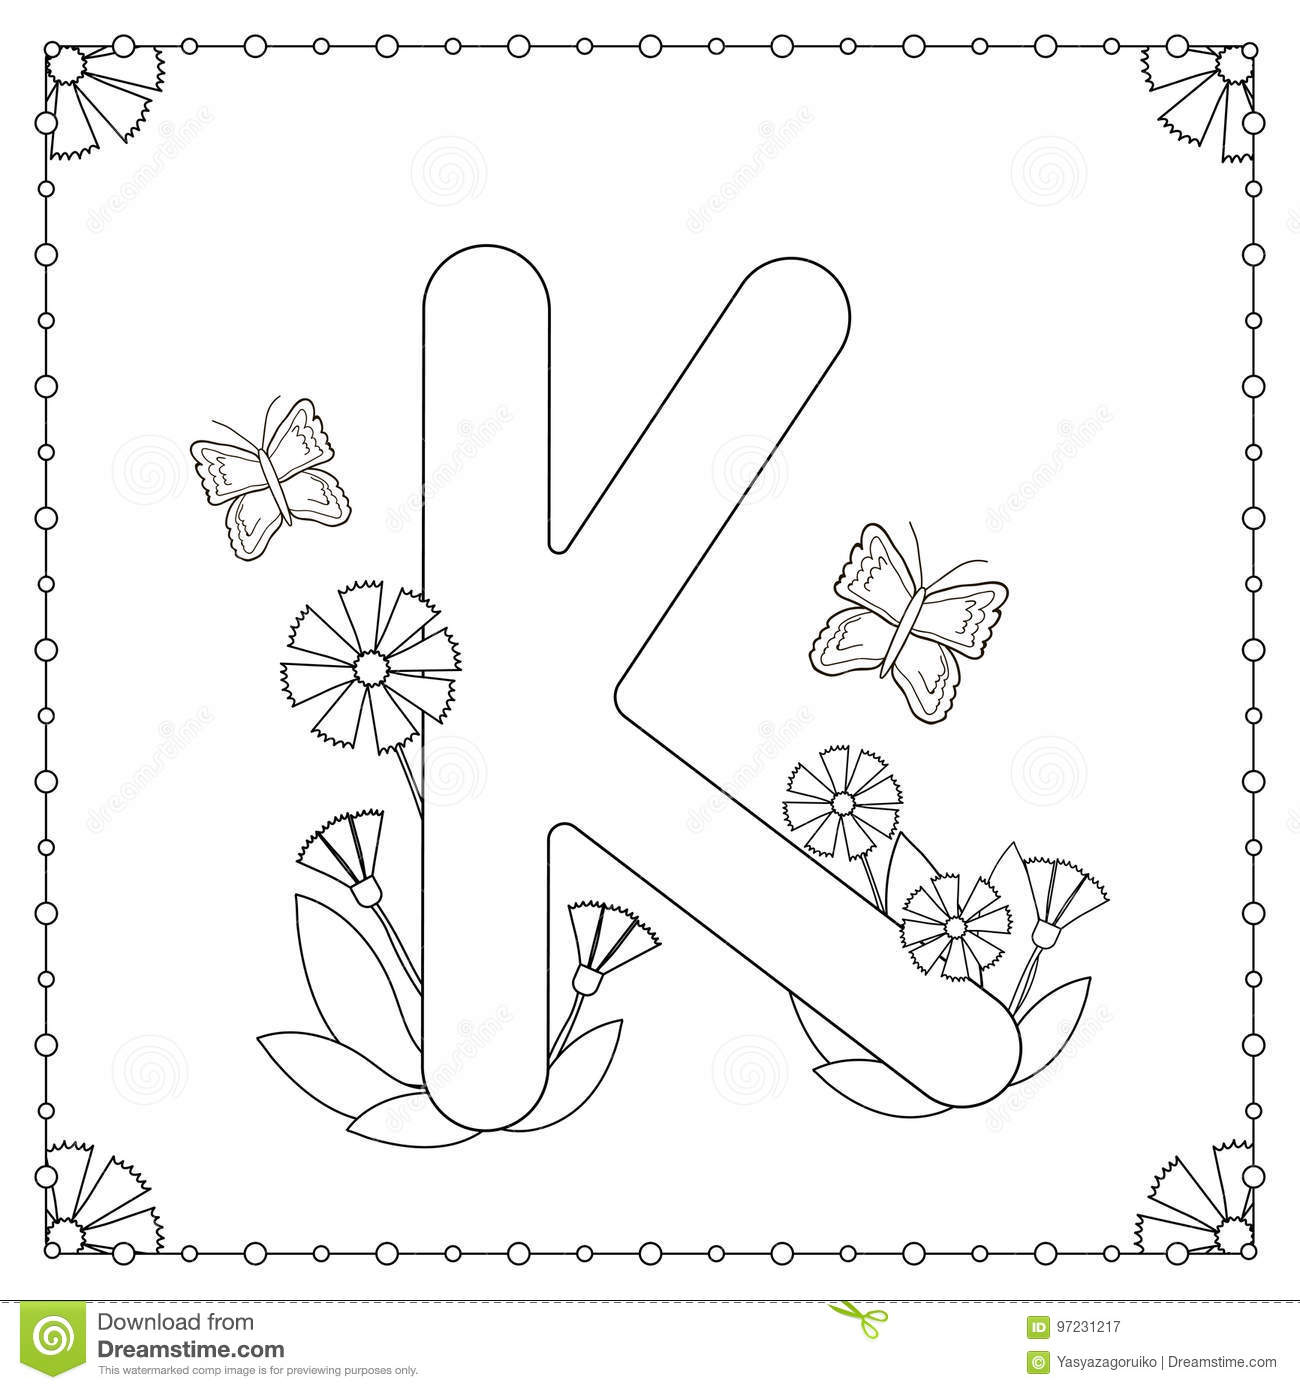 Alphabet coloring page stock vector. Illustration of illustration ...